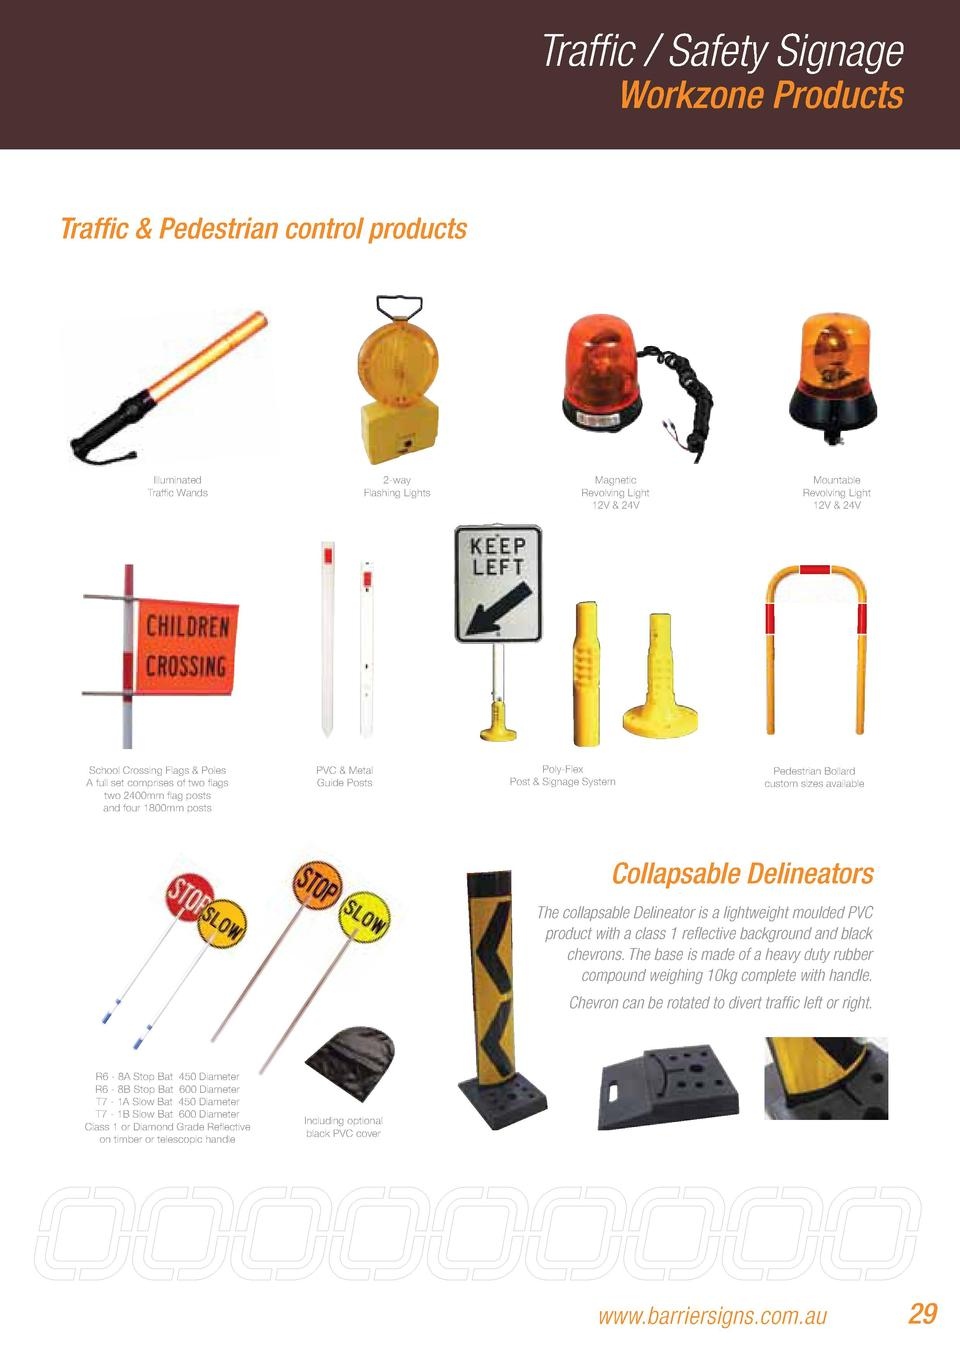 Traffic   Safety Signage Workzone Products  Traffic   Pedestrian control products  Illuminated Traffic Wands  School Cross...